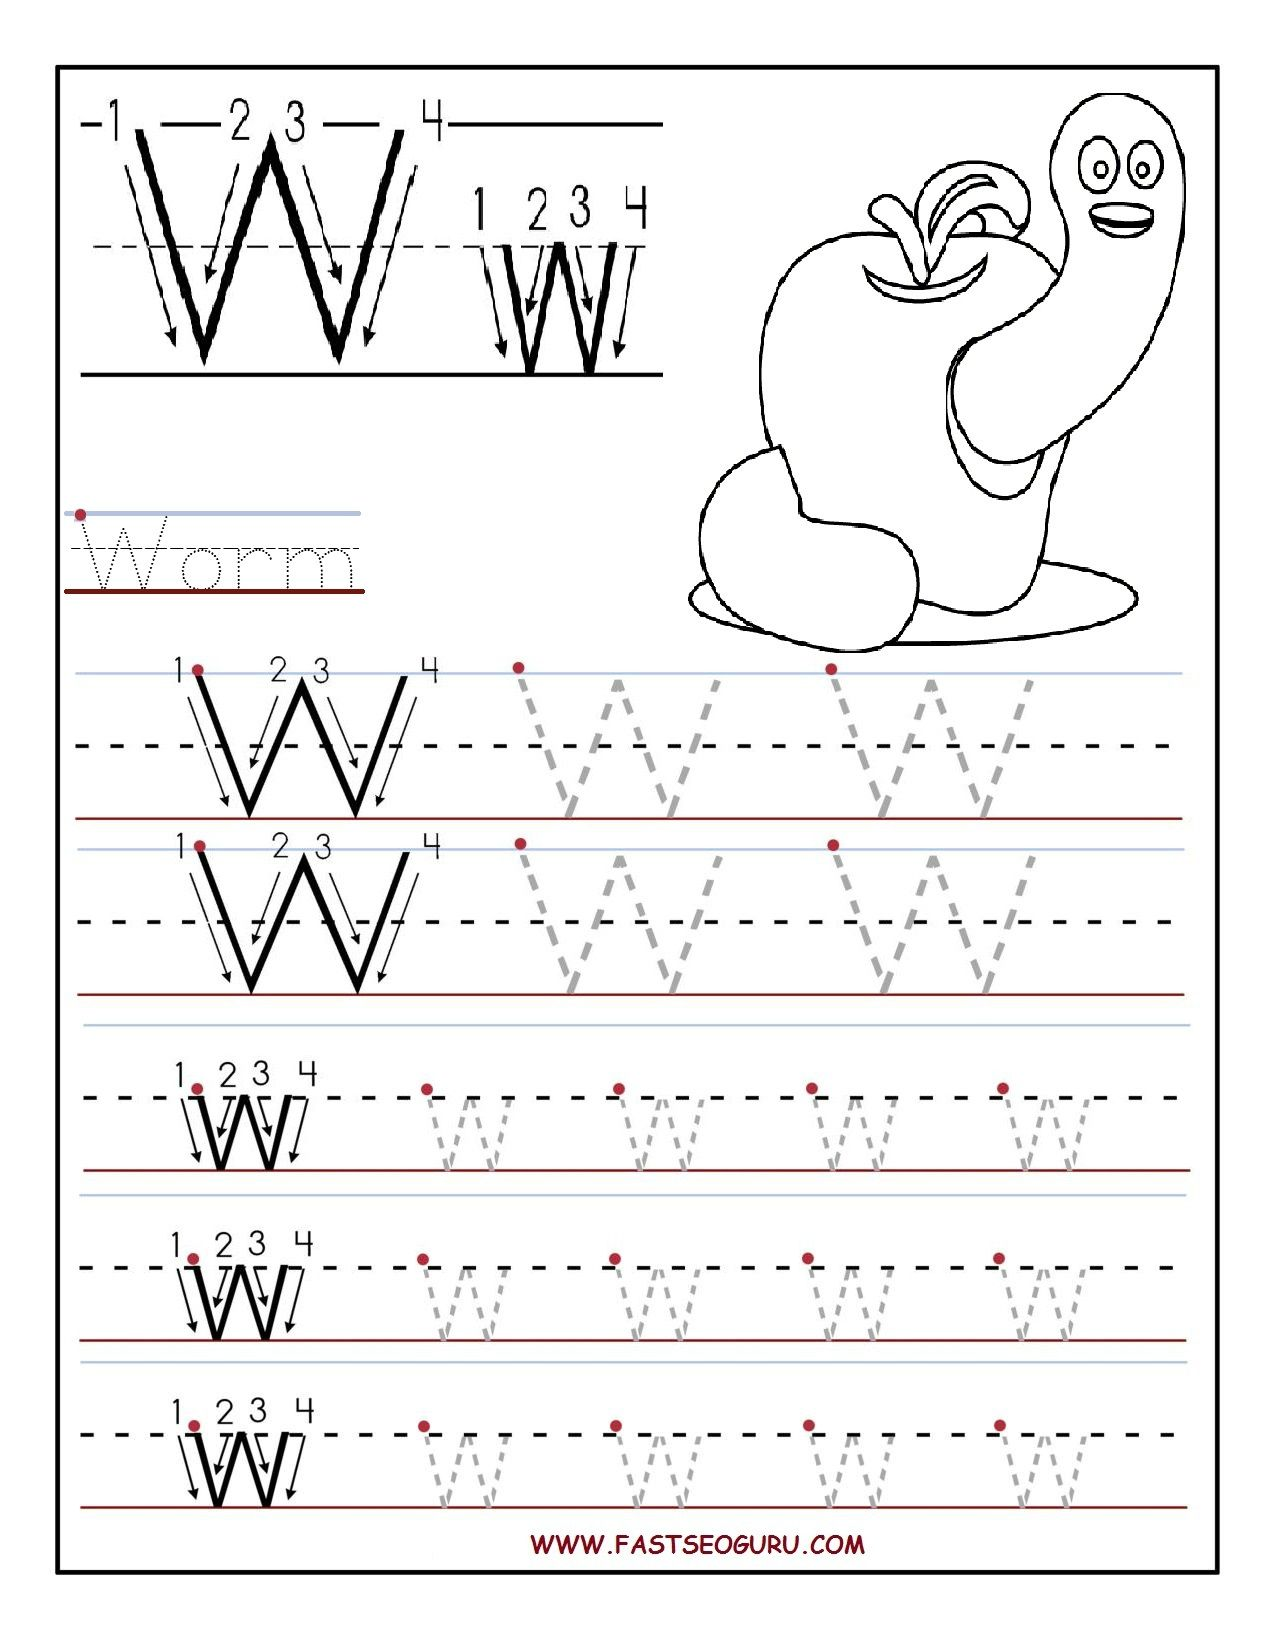 Worksheets Letter W Worksheets the letter w worksheets delwfg com printable letters and preschool on pinterest